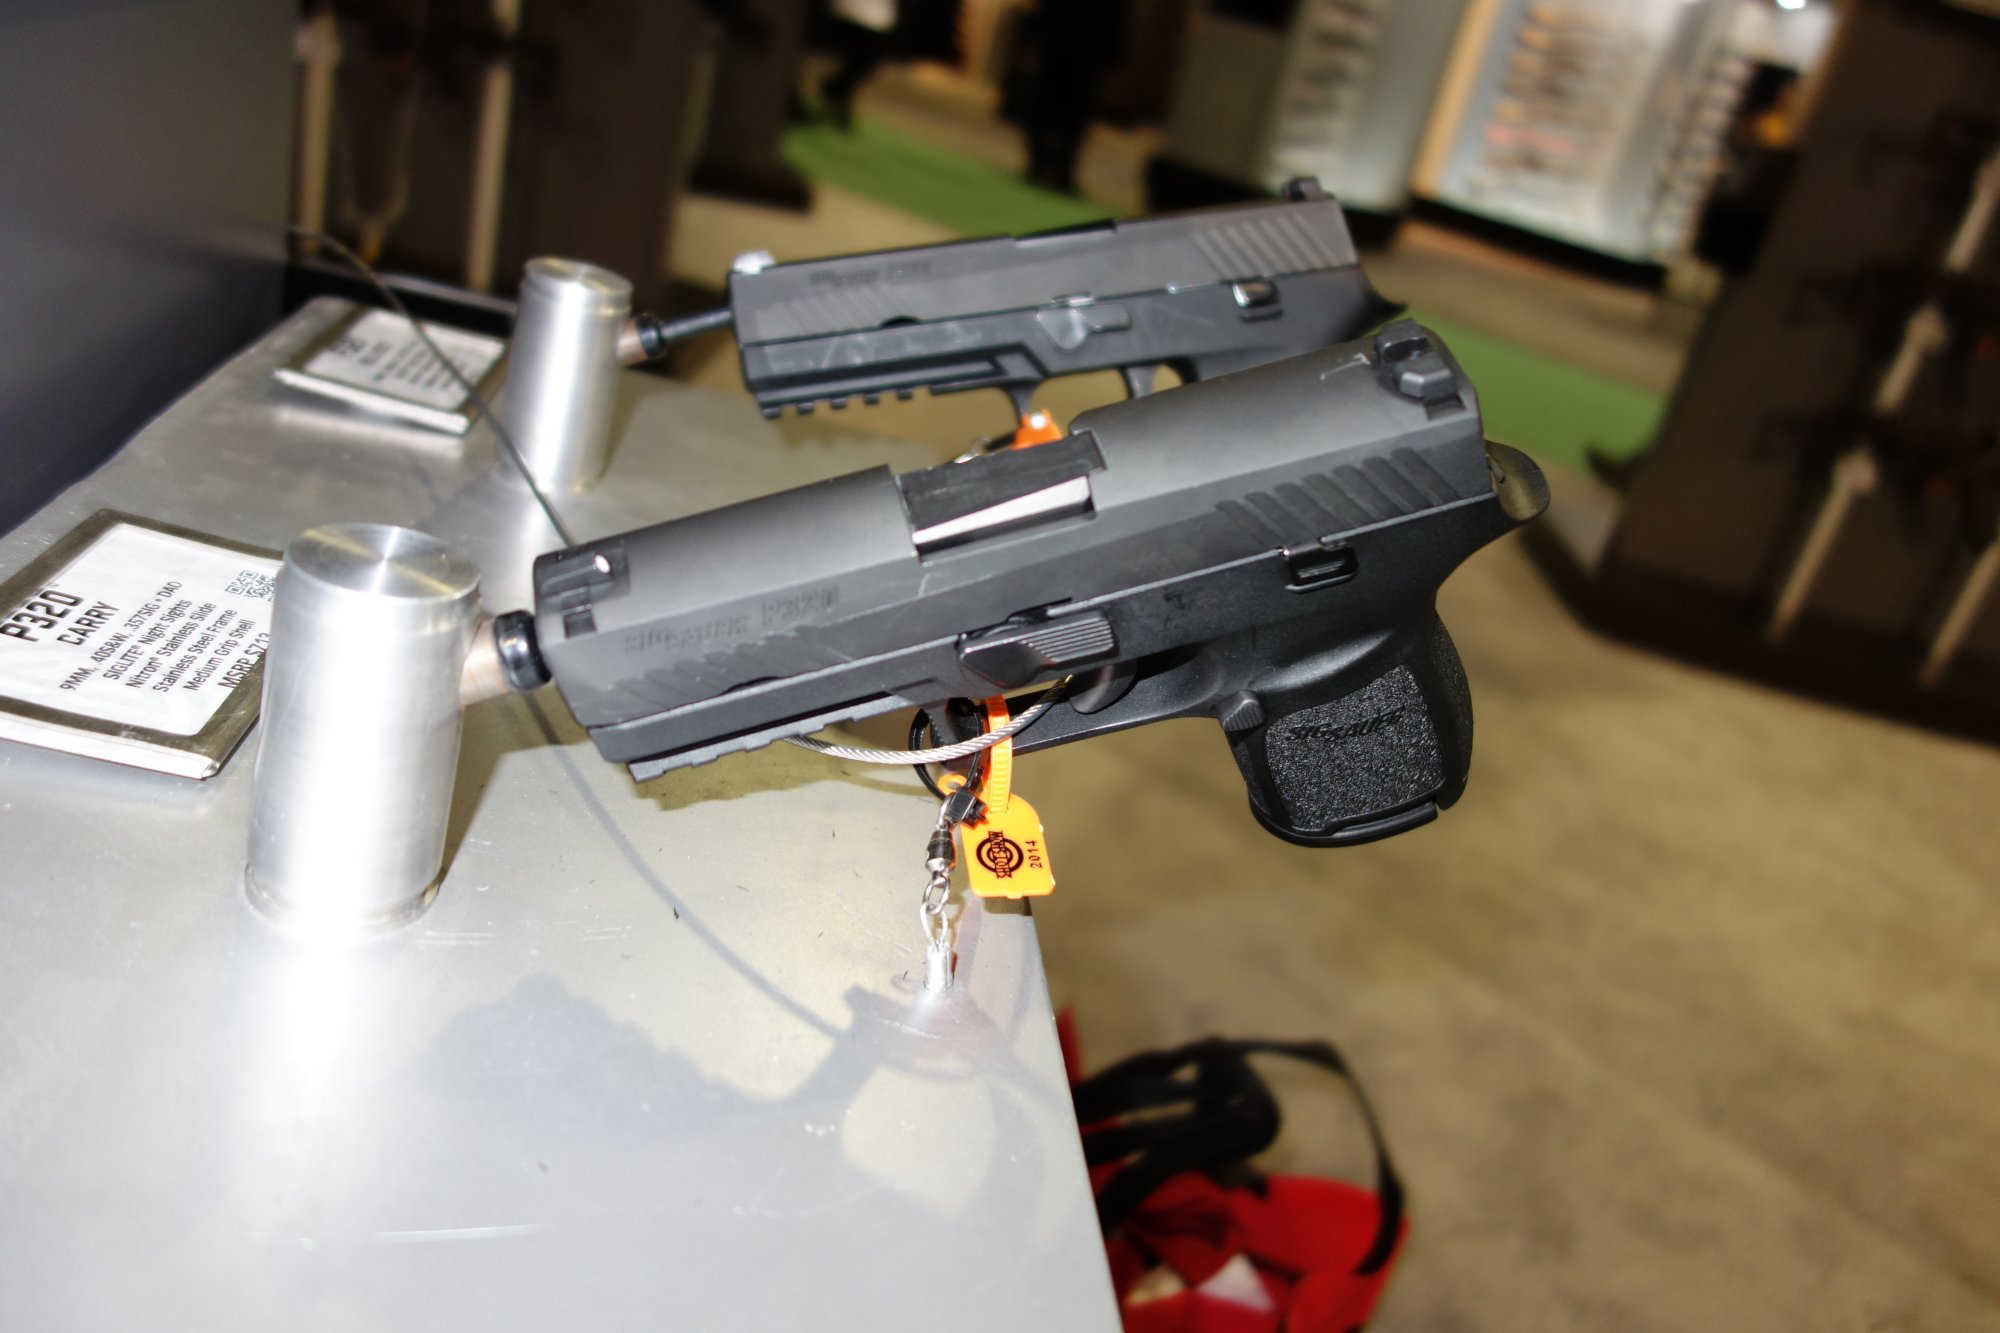 SIG SAUER P320 Carry Nitron SIG P320C Nitron Compact Combat Tactical Pistol 9mm .40 SW .357 SIG  for Concealed Carry SHOT Show 2014 1 14 14 David Crane DefenseReview.com DR 12 SIG SAUER P320 Nitron Striker Fired, Polymer Frame Semi Auto Combat/Tactical Pistol Series: Meet the SIG 320C (SIG 320 Carry/Compact) and SIG 320F (SIG 320 Full Size) 9mm/.40 S&W/.357 SIG Pistols